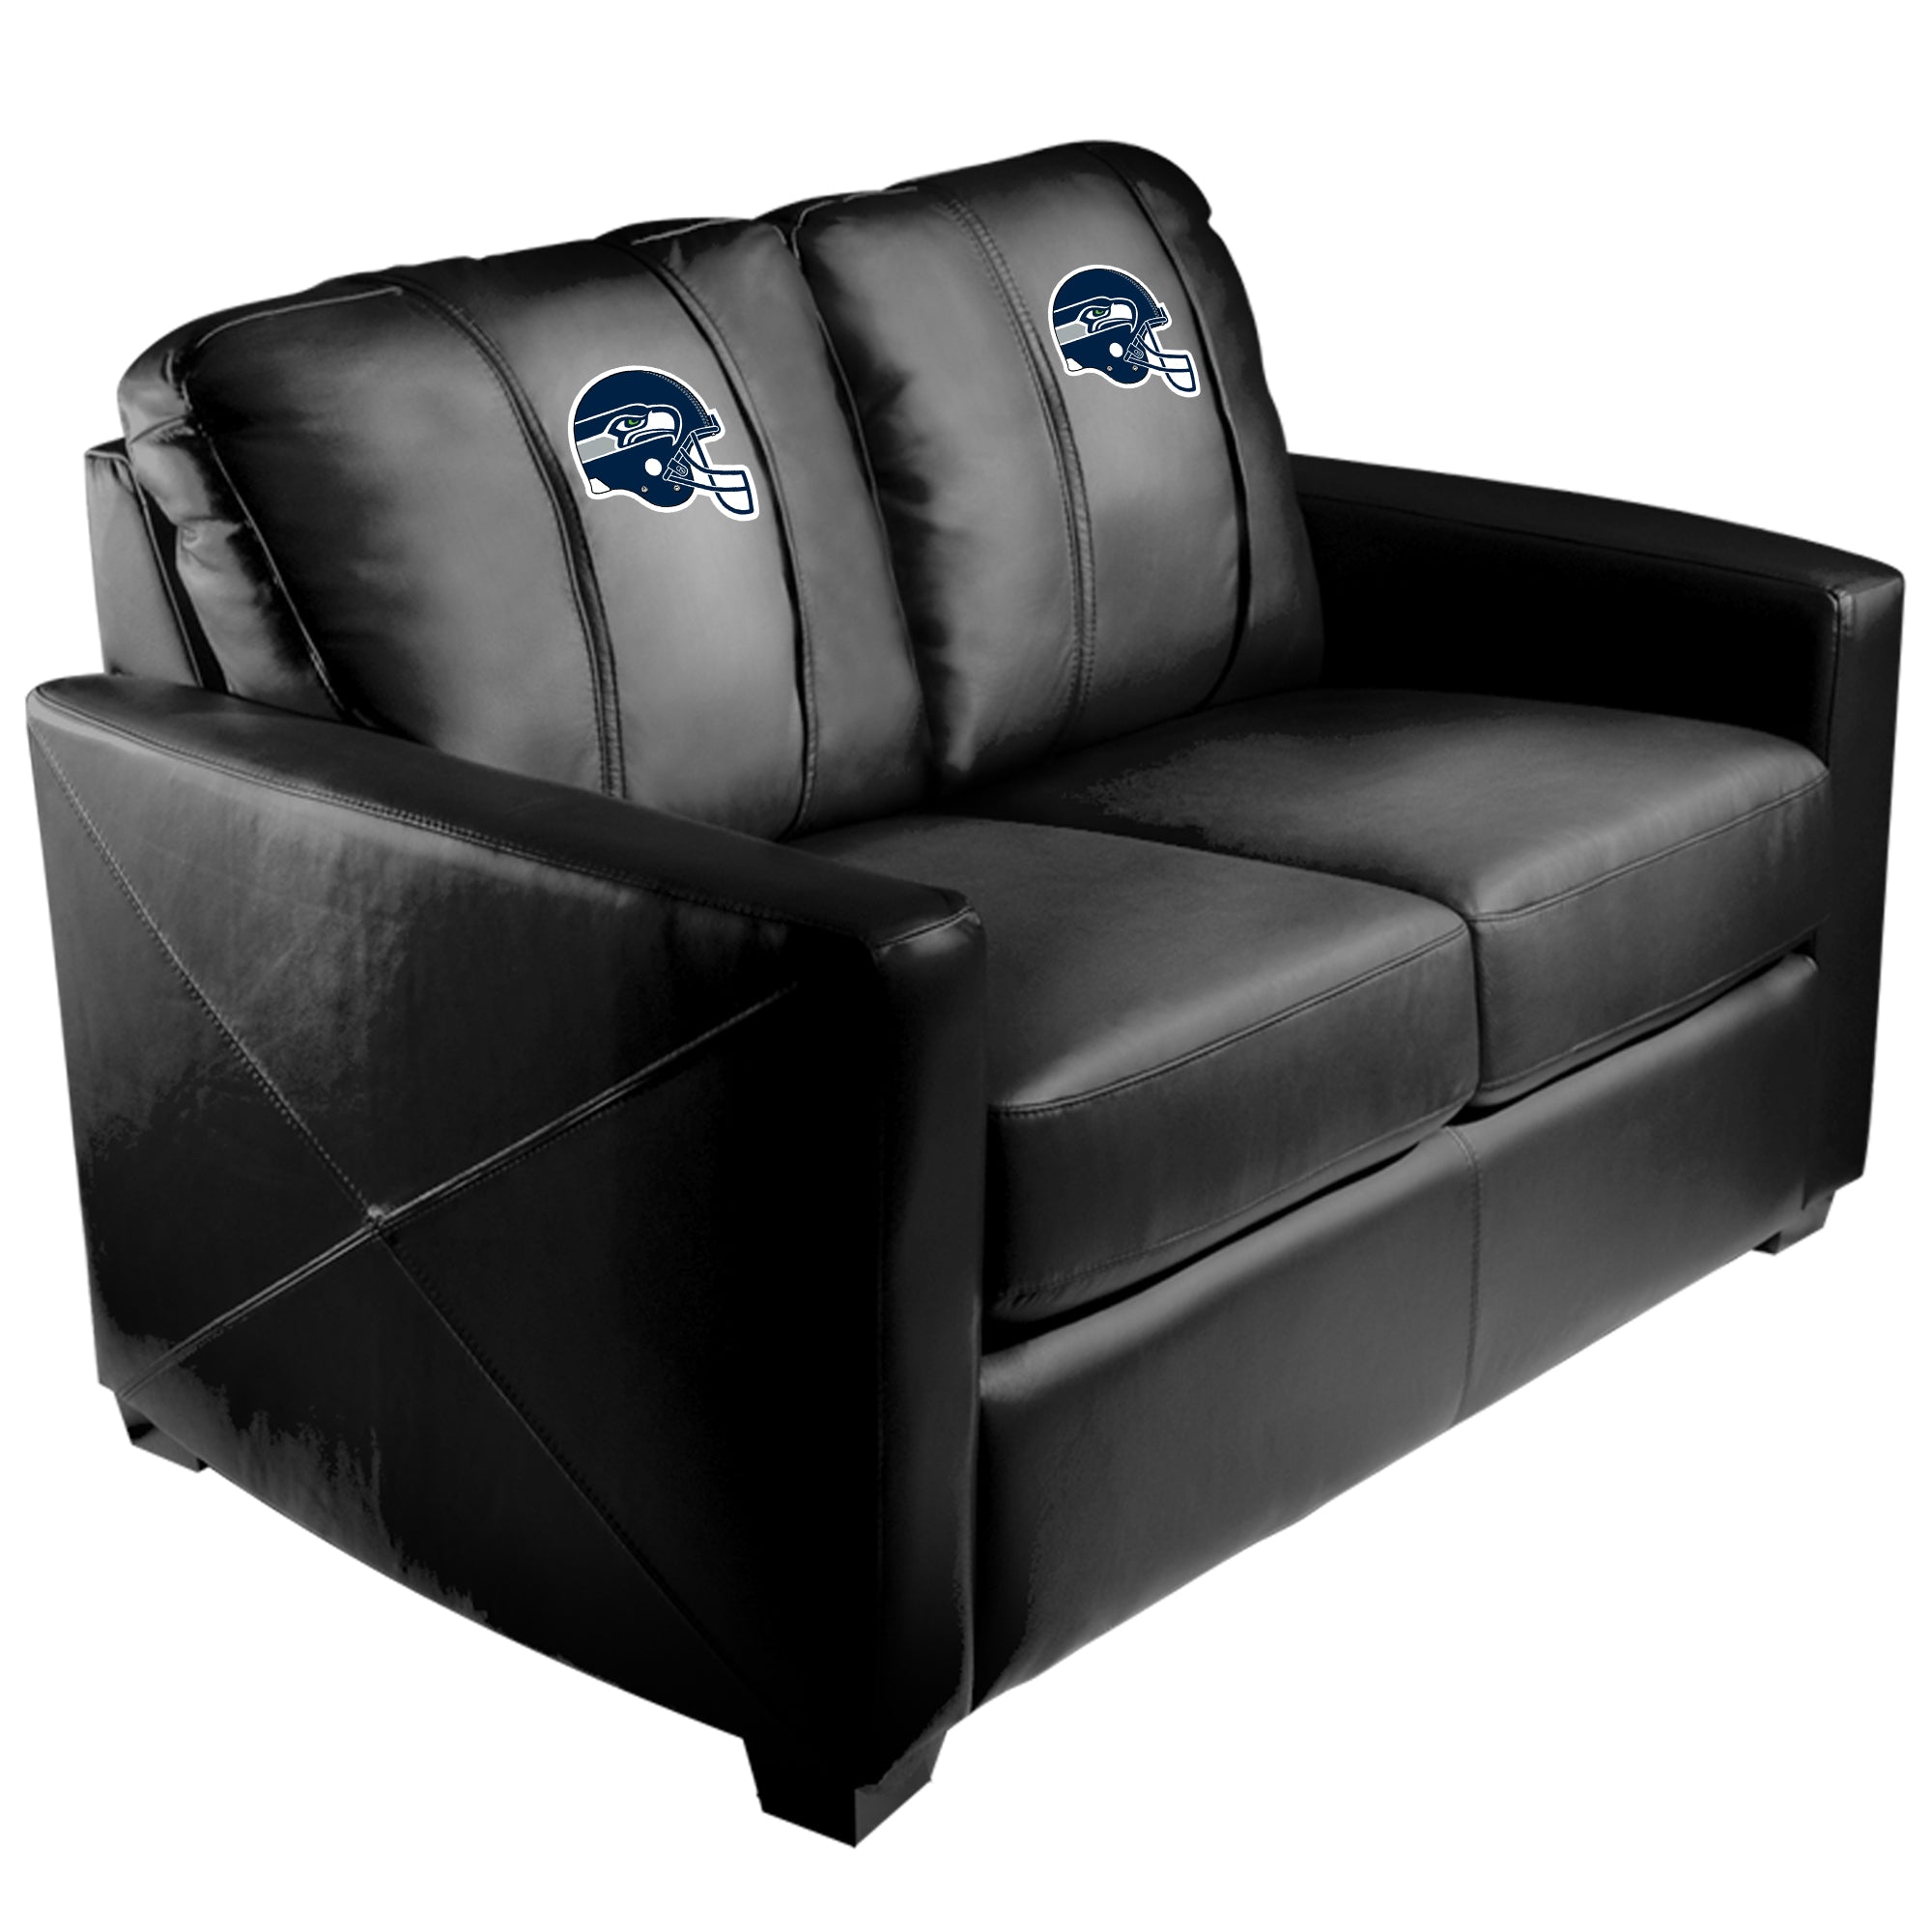 Silver Loveseat with  Seattle Seahawks Helmet Logo